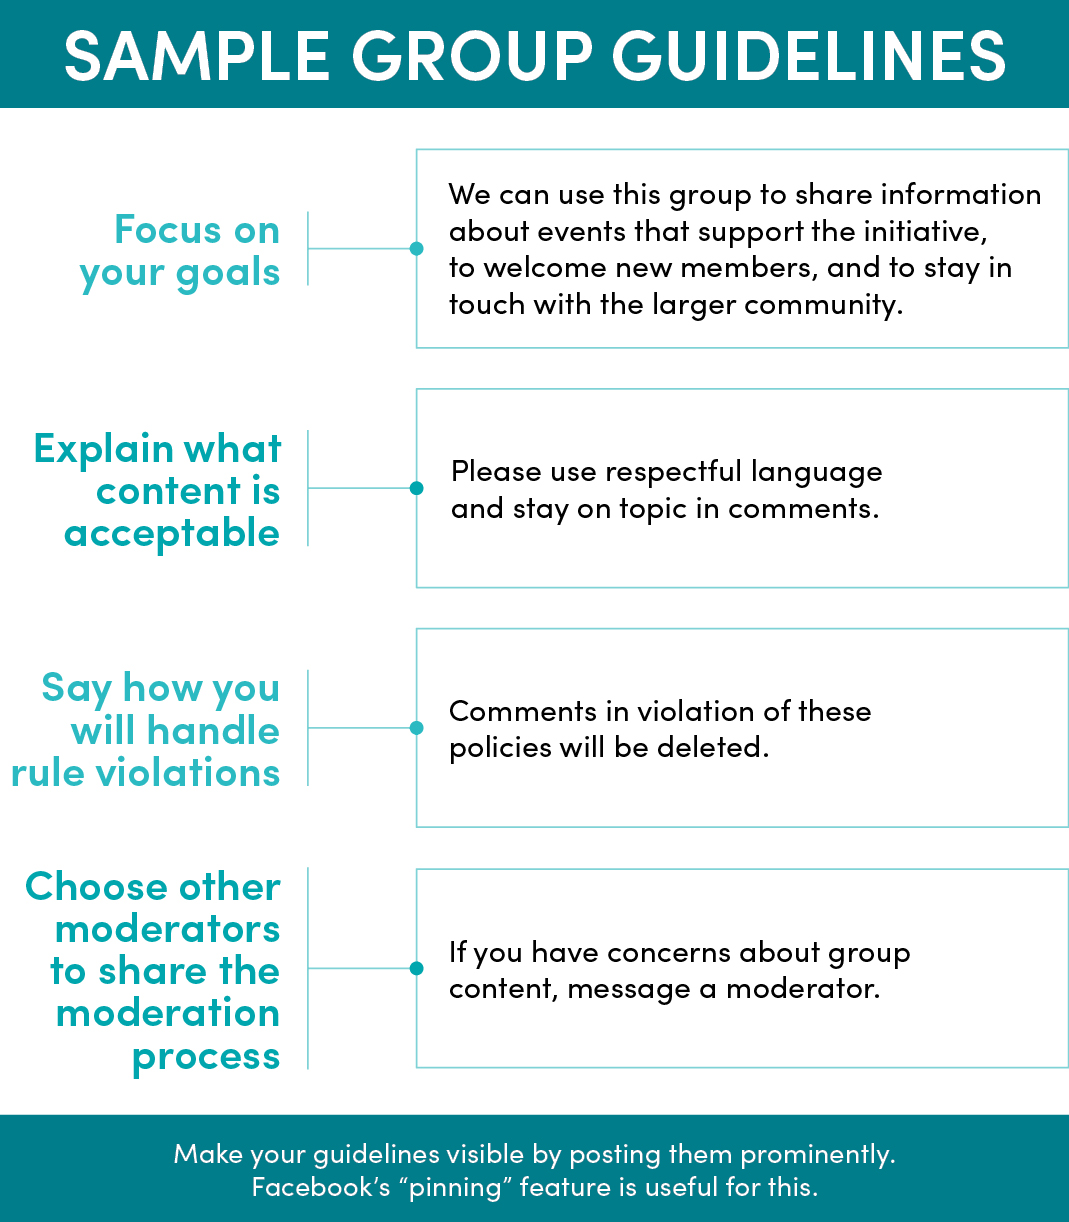 """Focus on your goals We can use this group to share information about events that support the initiative, to welcome new members, and to stay in touch with the larger community. Explain what content is acceptable Please use respectful language and stay on topic in comments. Say how you will handle rule violations Comments in violation of these policies will be deleted. Choose other moderators to share the moderation process If you have concerns about group content, message a moderator. Make your guidelines visible by posting them prominently. Facebook's """"pinning"""" feature is useful for this."""